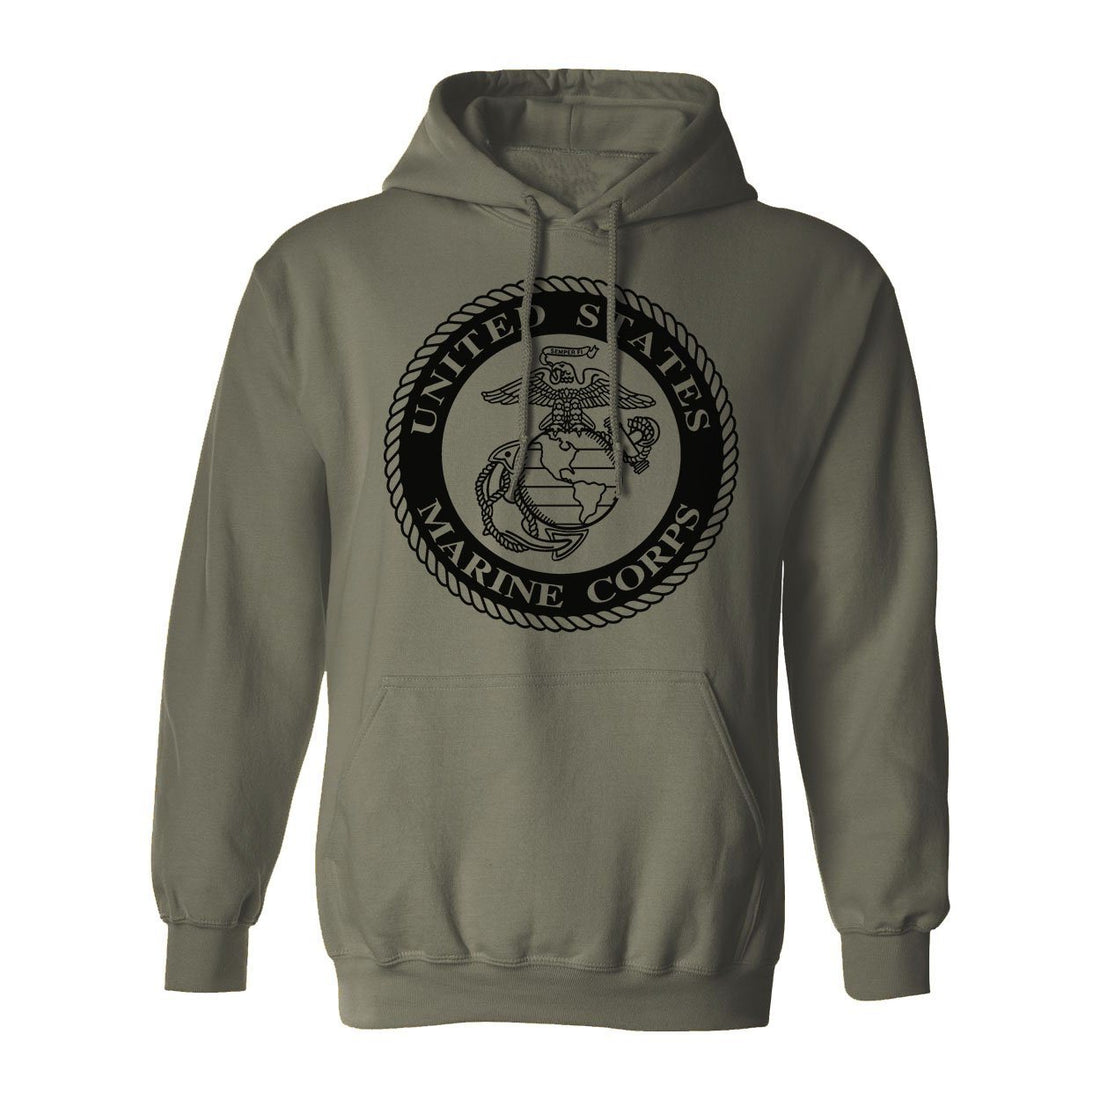 Marines Classic Seal Hoodie (CPT's SPECIAL Extra $8 Discount)